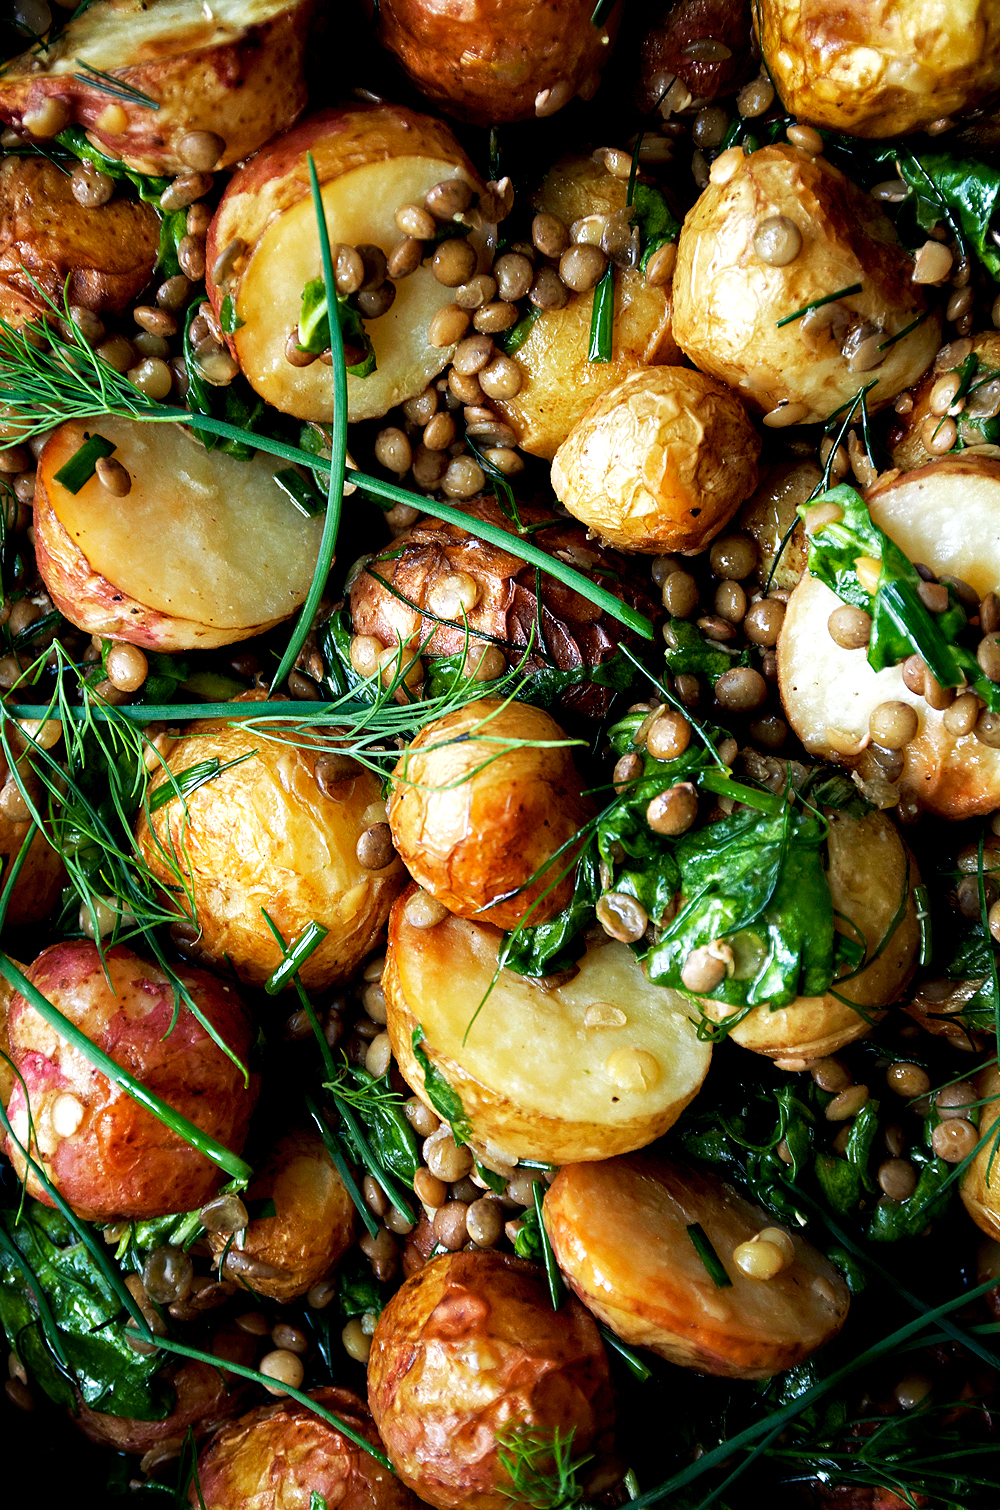 This roasted potato salad with lentils and a herby dressing is a far cry from standard mayo-filled potato salad - it's very light and a meal in itself with protein-packed lentils and spinach. The herb vinaigrette lifts everything up here, with dill, chives, and a little spicy mustard - perfect for picnics and barbecues.